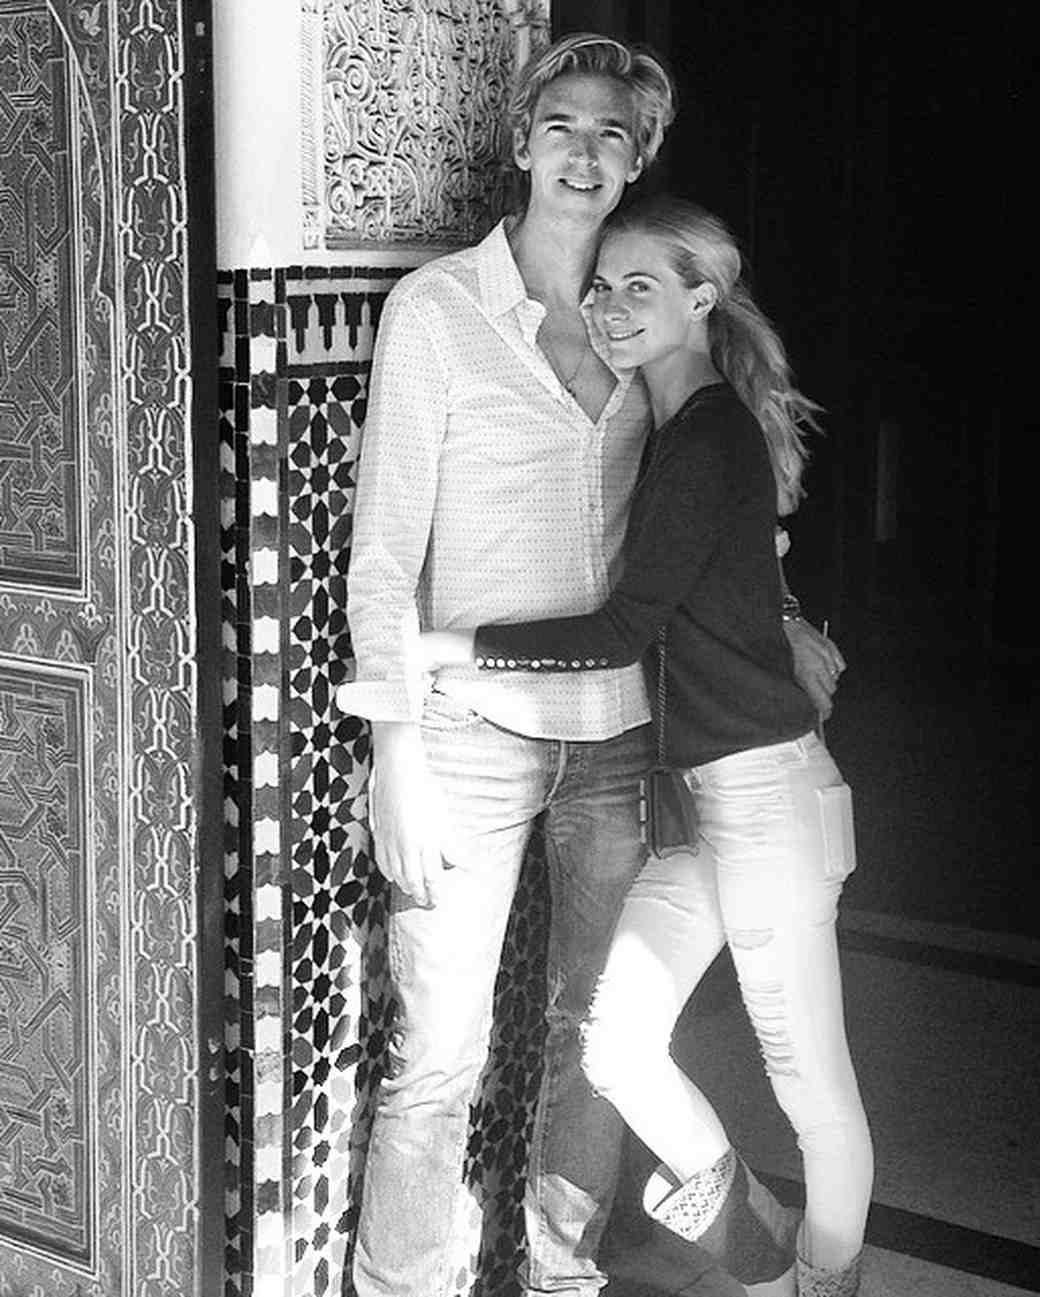 Poppy Delevingne and James Cook on Honeymoon in Morocco